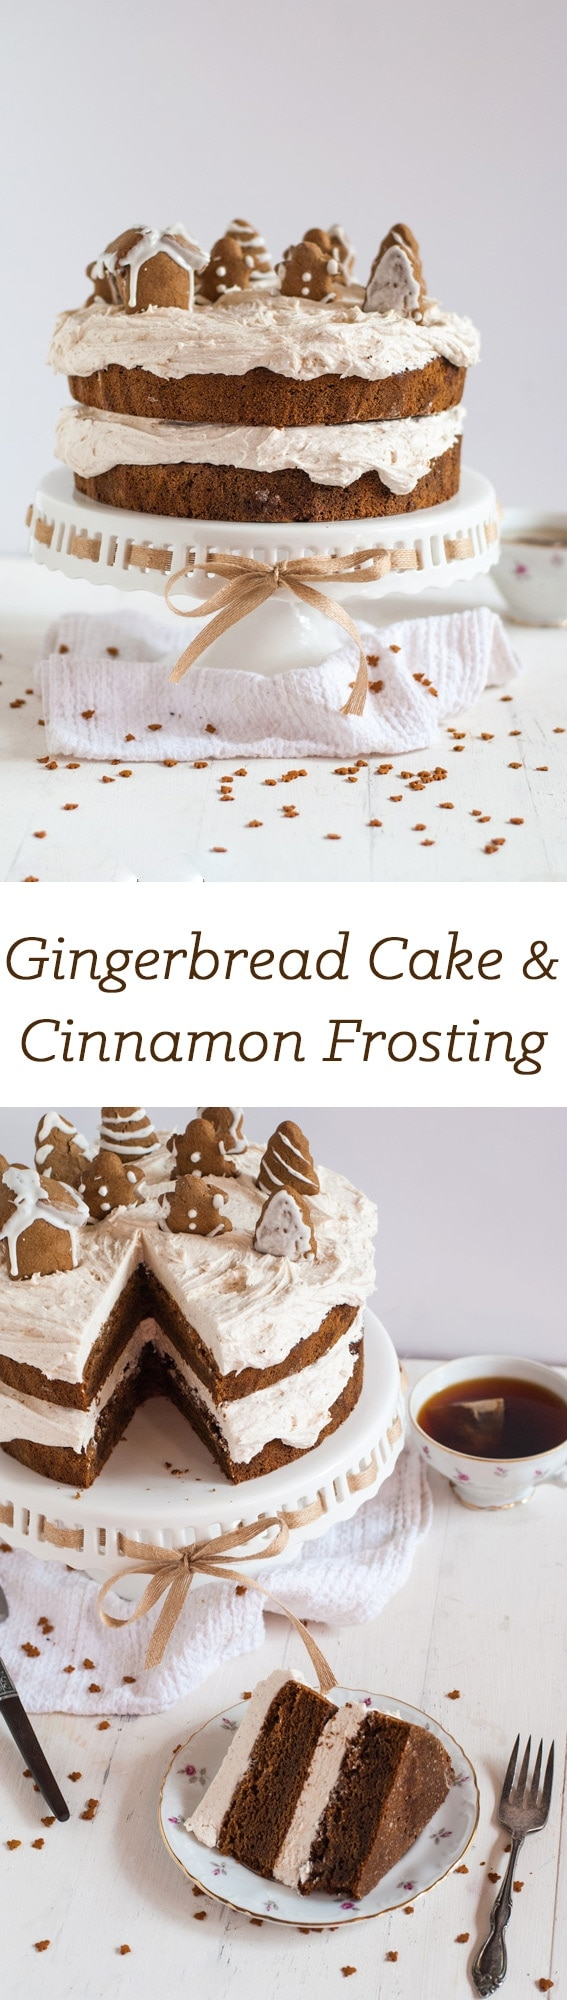 The best gingerbread cake you will ever try - guaranteed